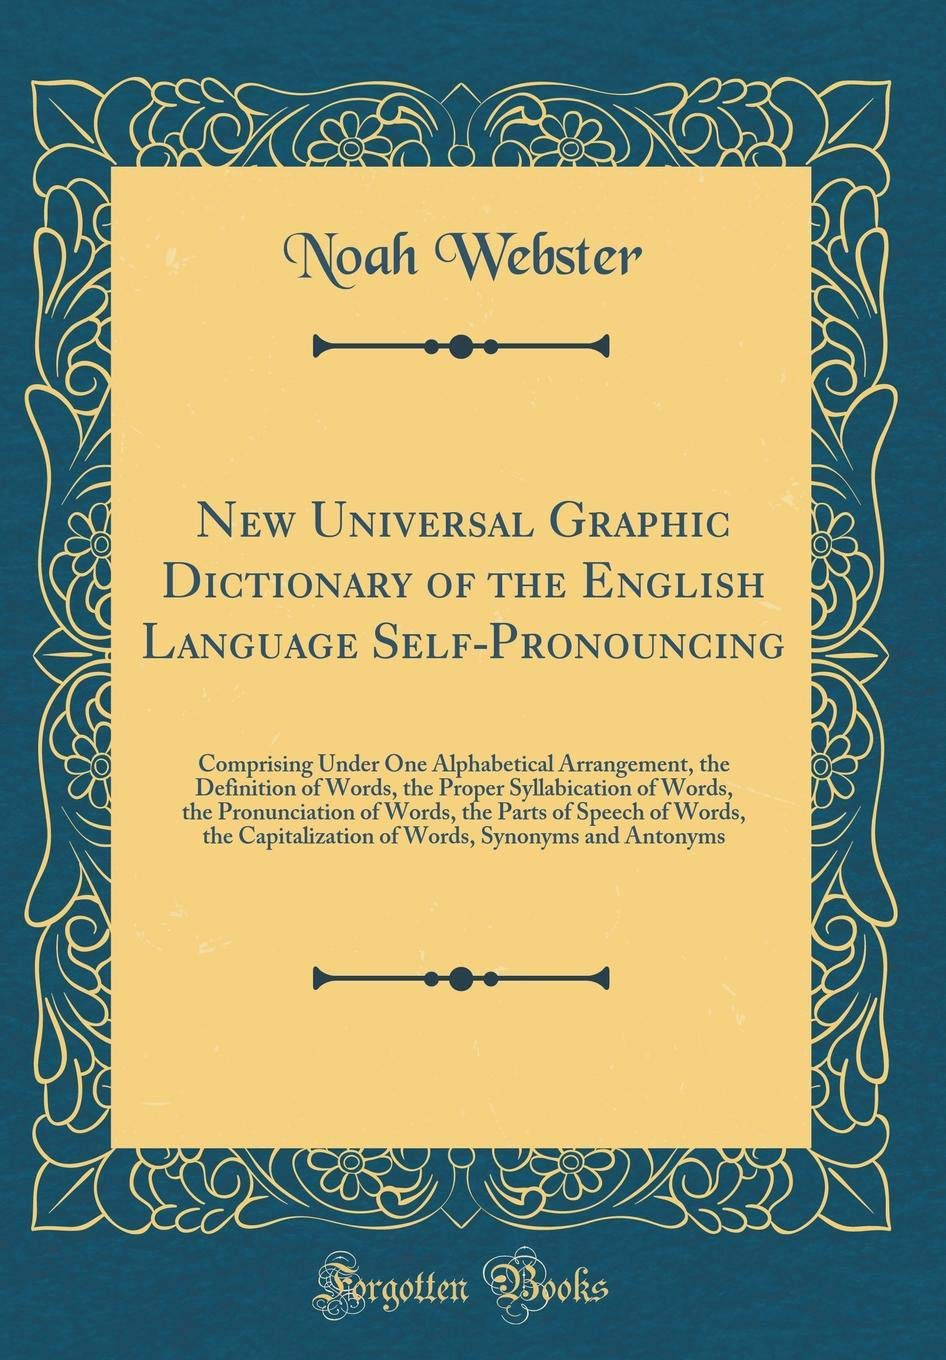 New Universal Graphic Dictionary of the English Language Self-Pronouncing: Comprising Under One Alphabetical Arrangement, the Definition of Words, the ... the Parts of Speech of Words, the Capitalizat PDF